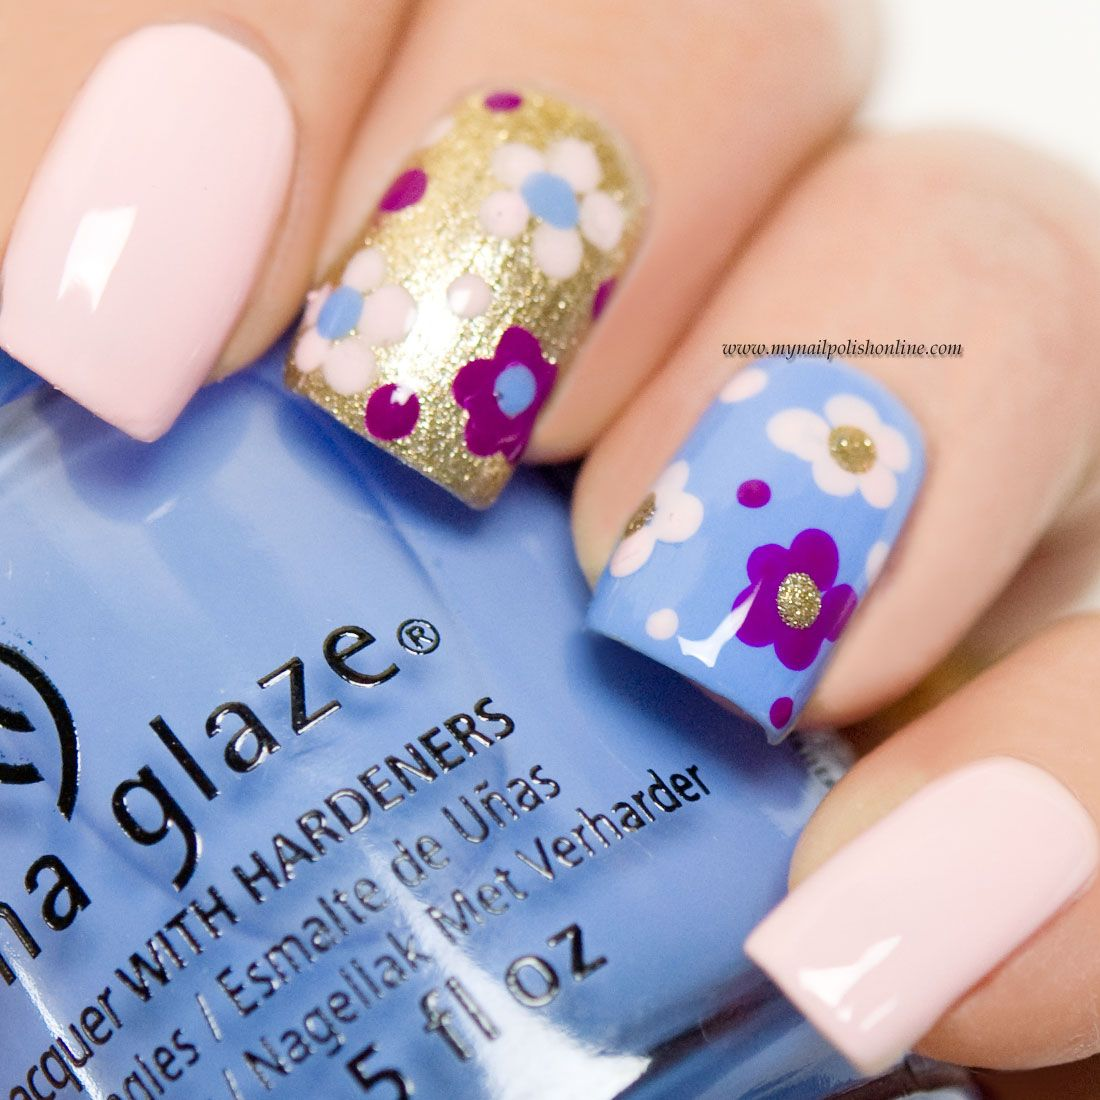 Nail Art with flowers | Capri, Nail nail and Manicure